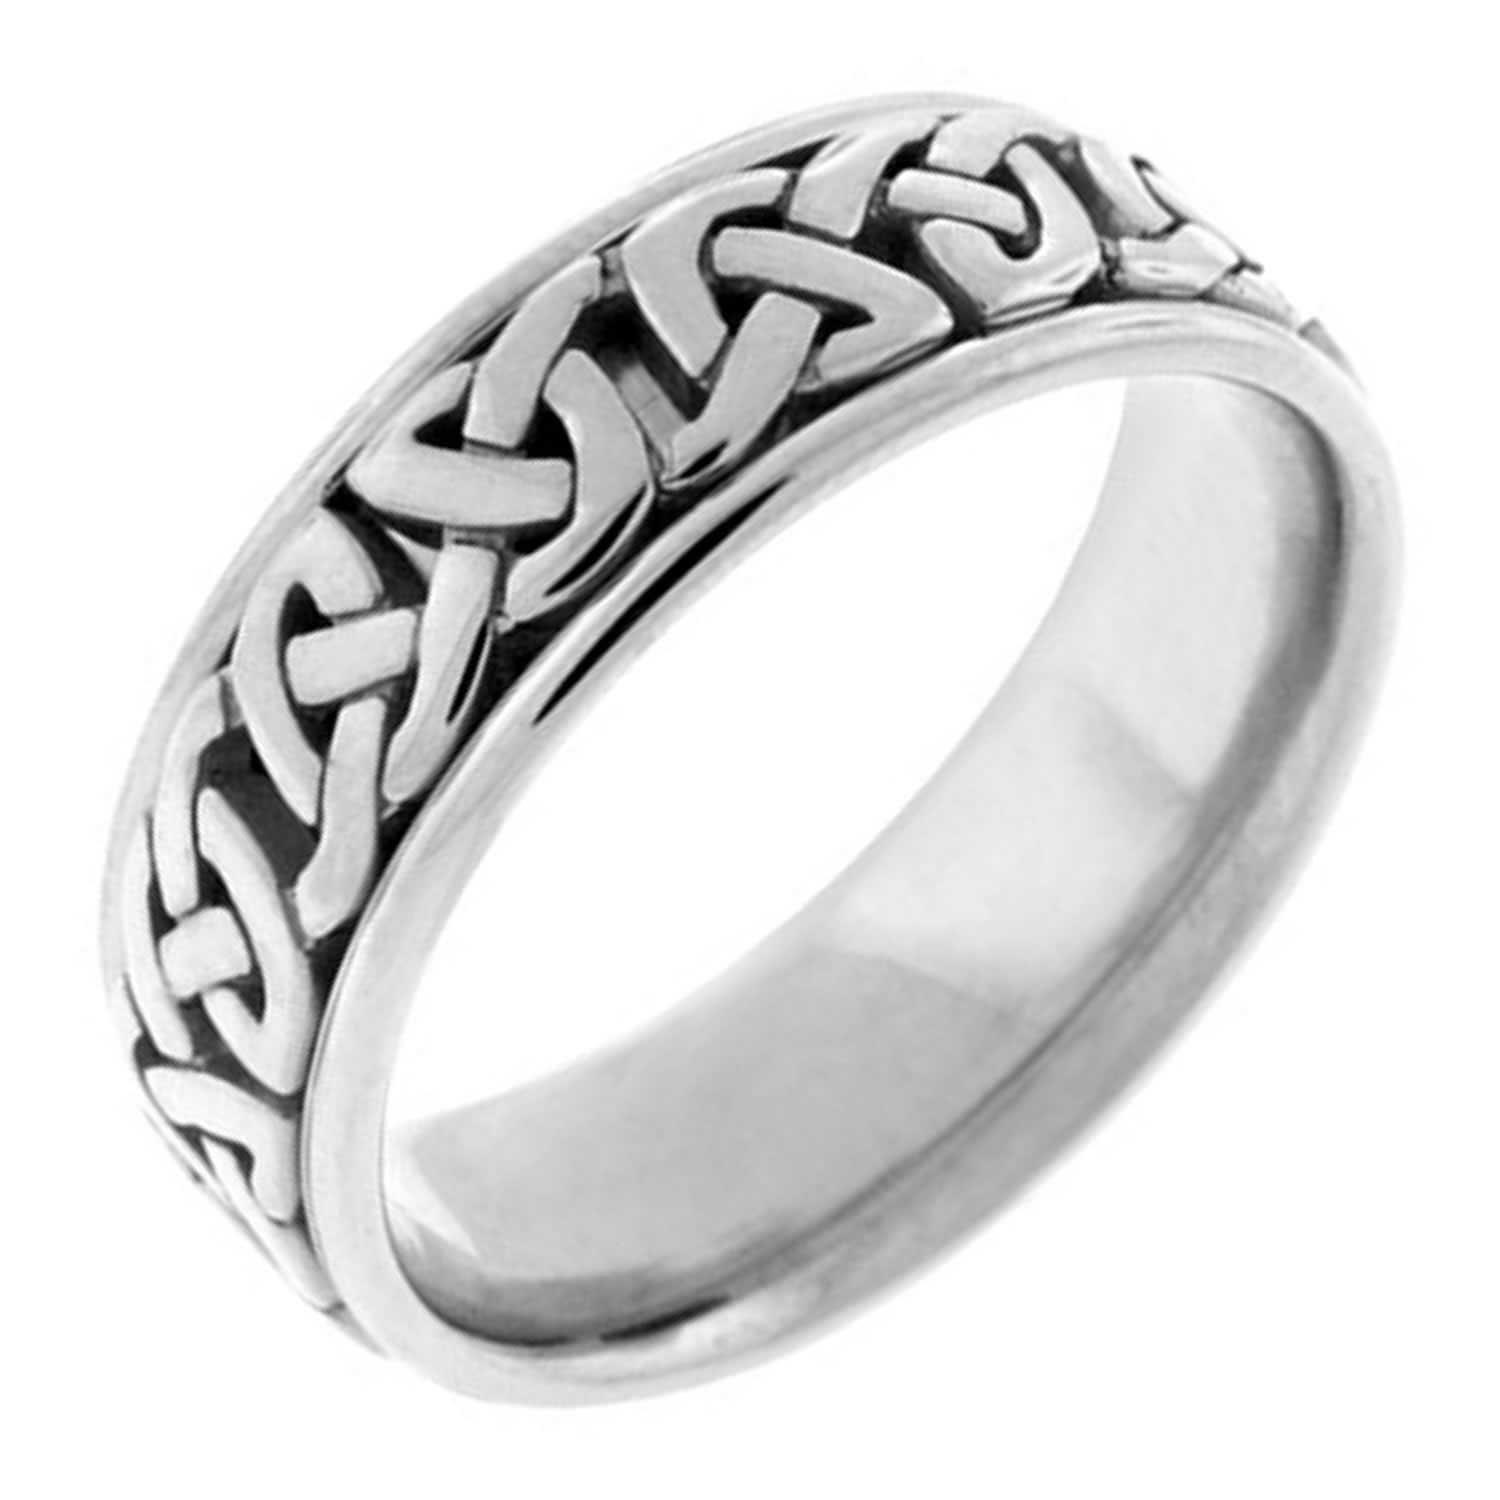 Platinum Celtic Love Knot Men's Comfort Fit Wedding Band (7mm) Size-9.5c1